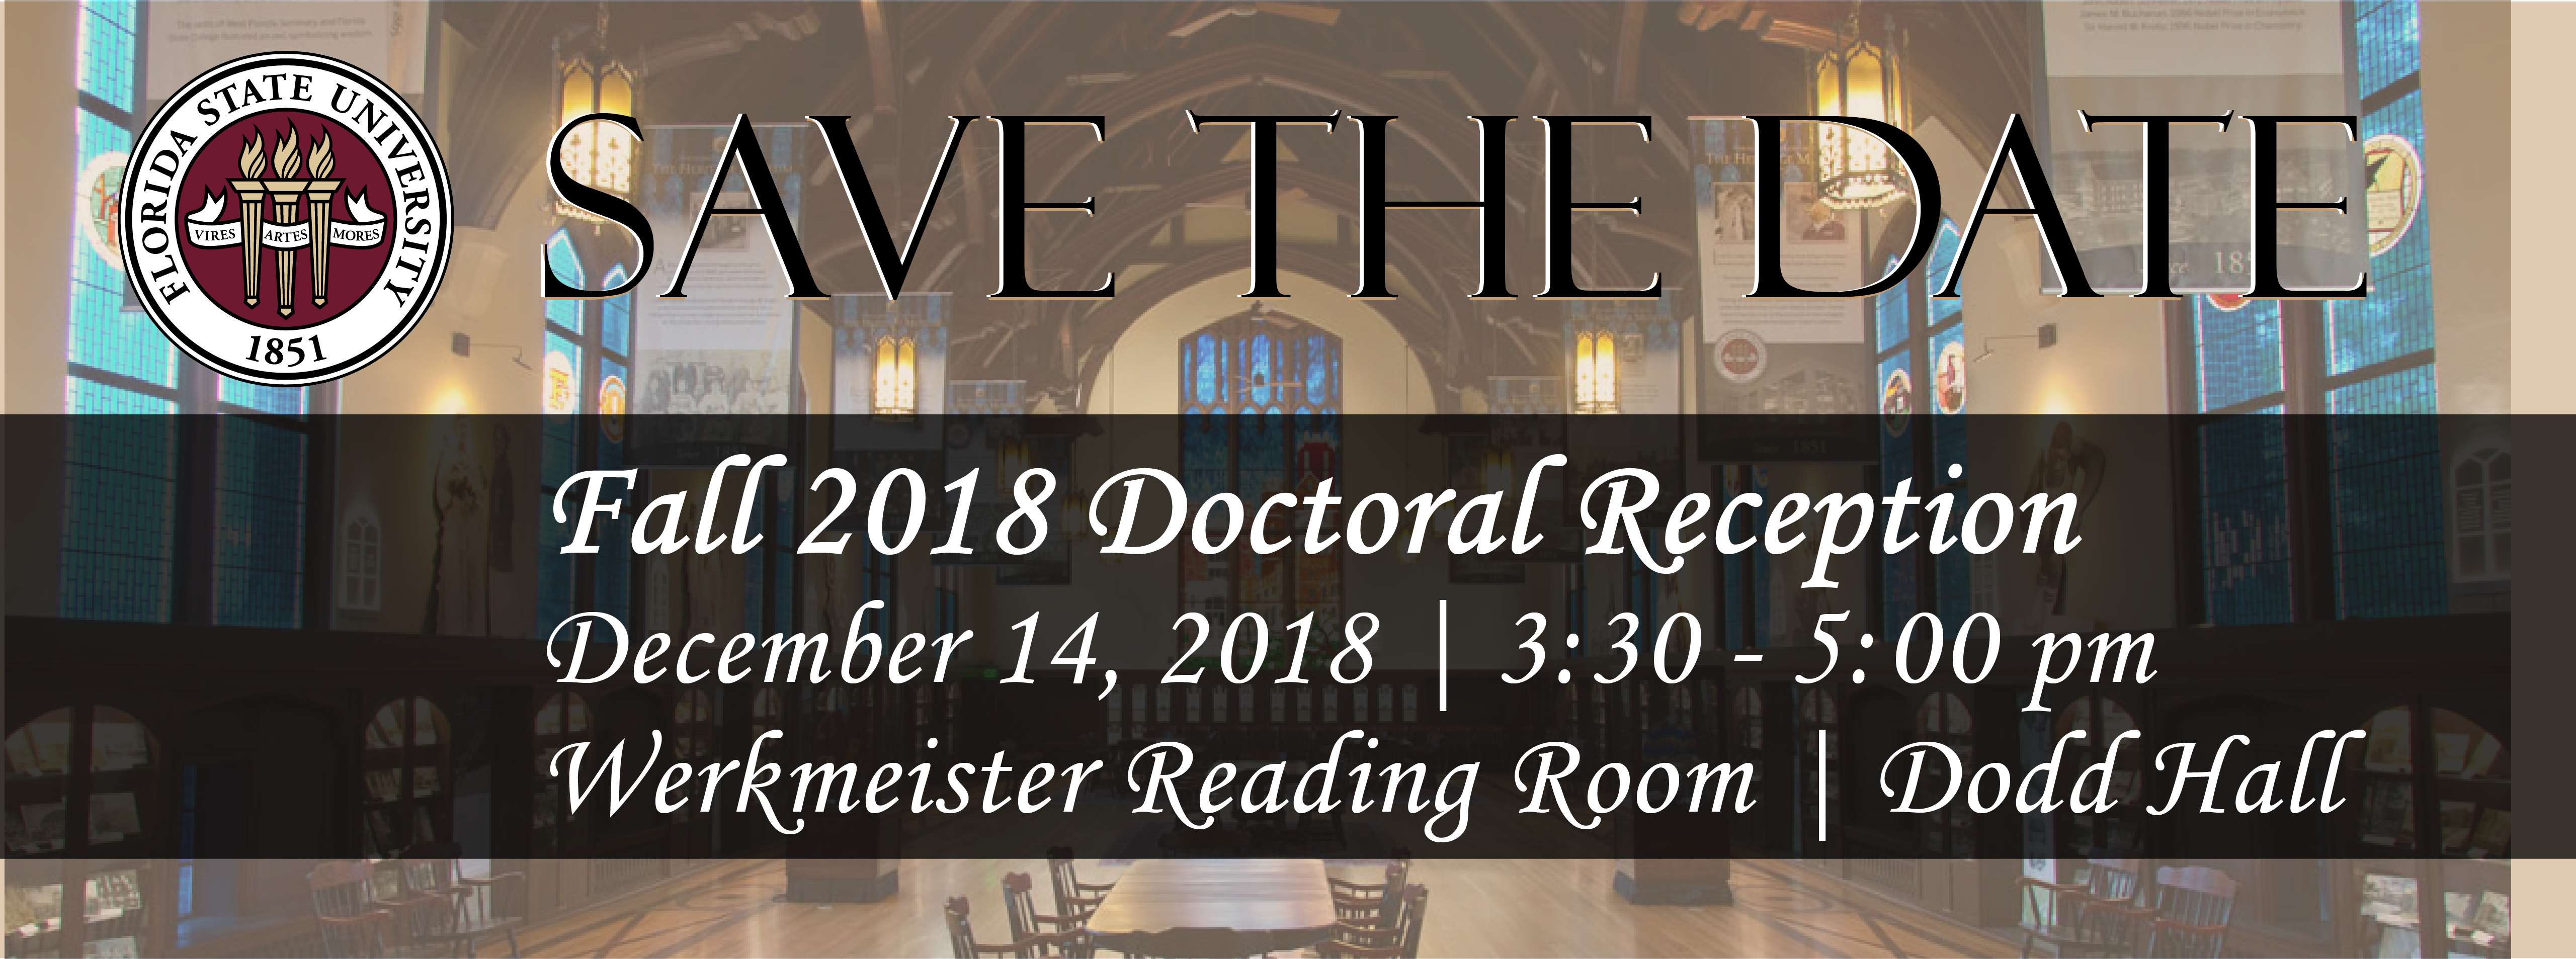 Fall 2018 Doctoral Reception